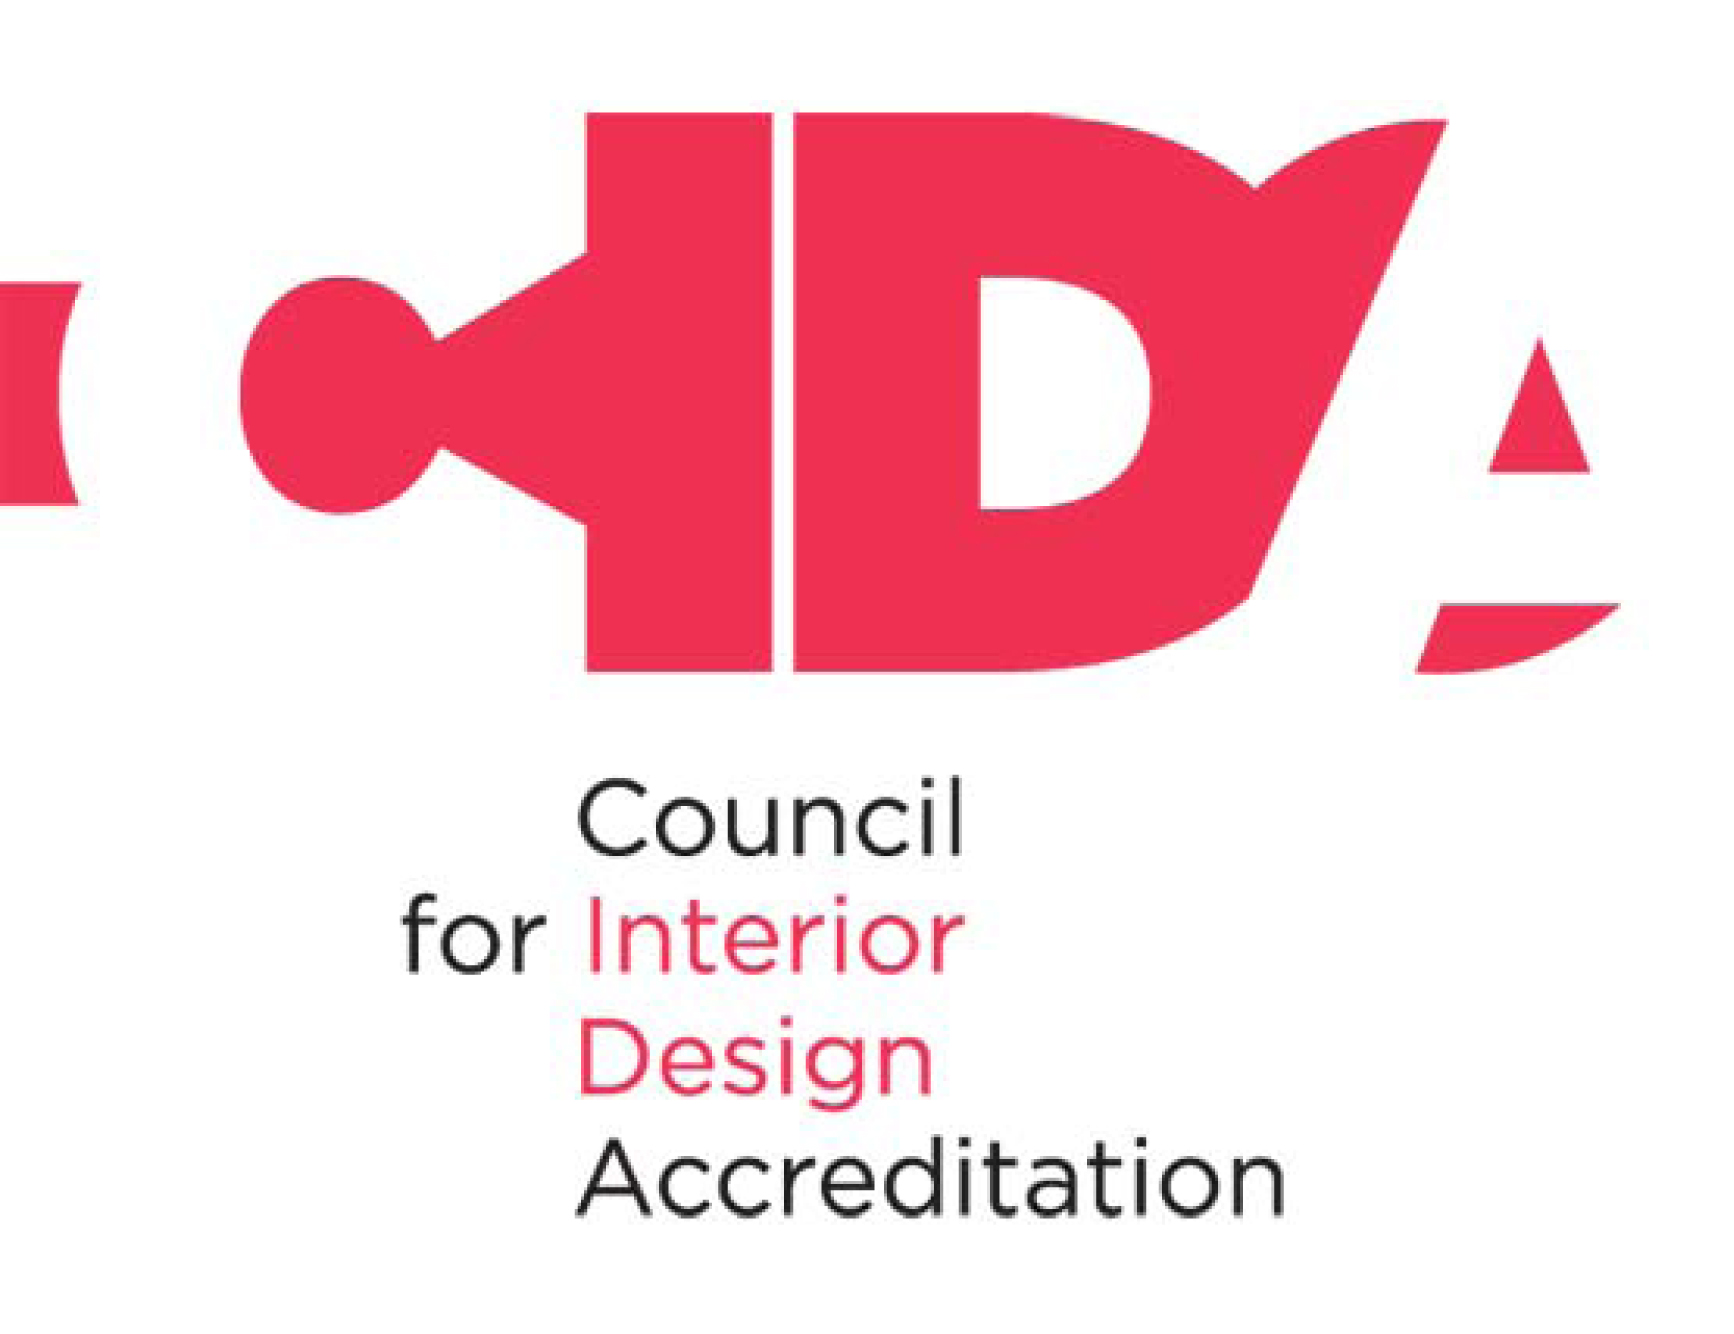 Council For Interior Design Accreditation Logo